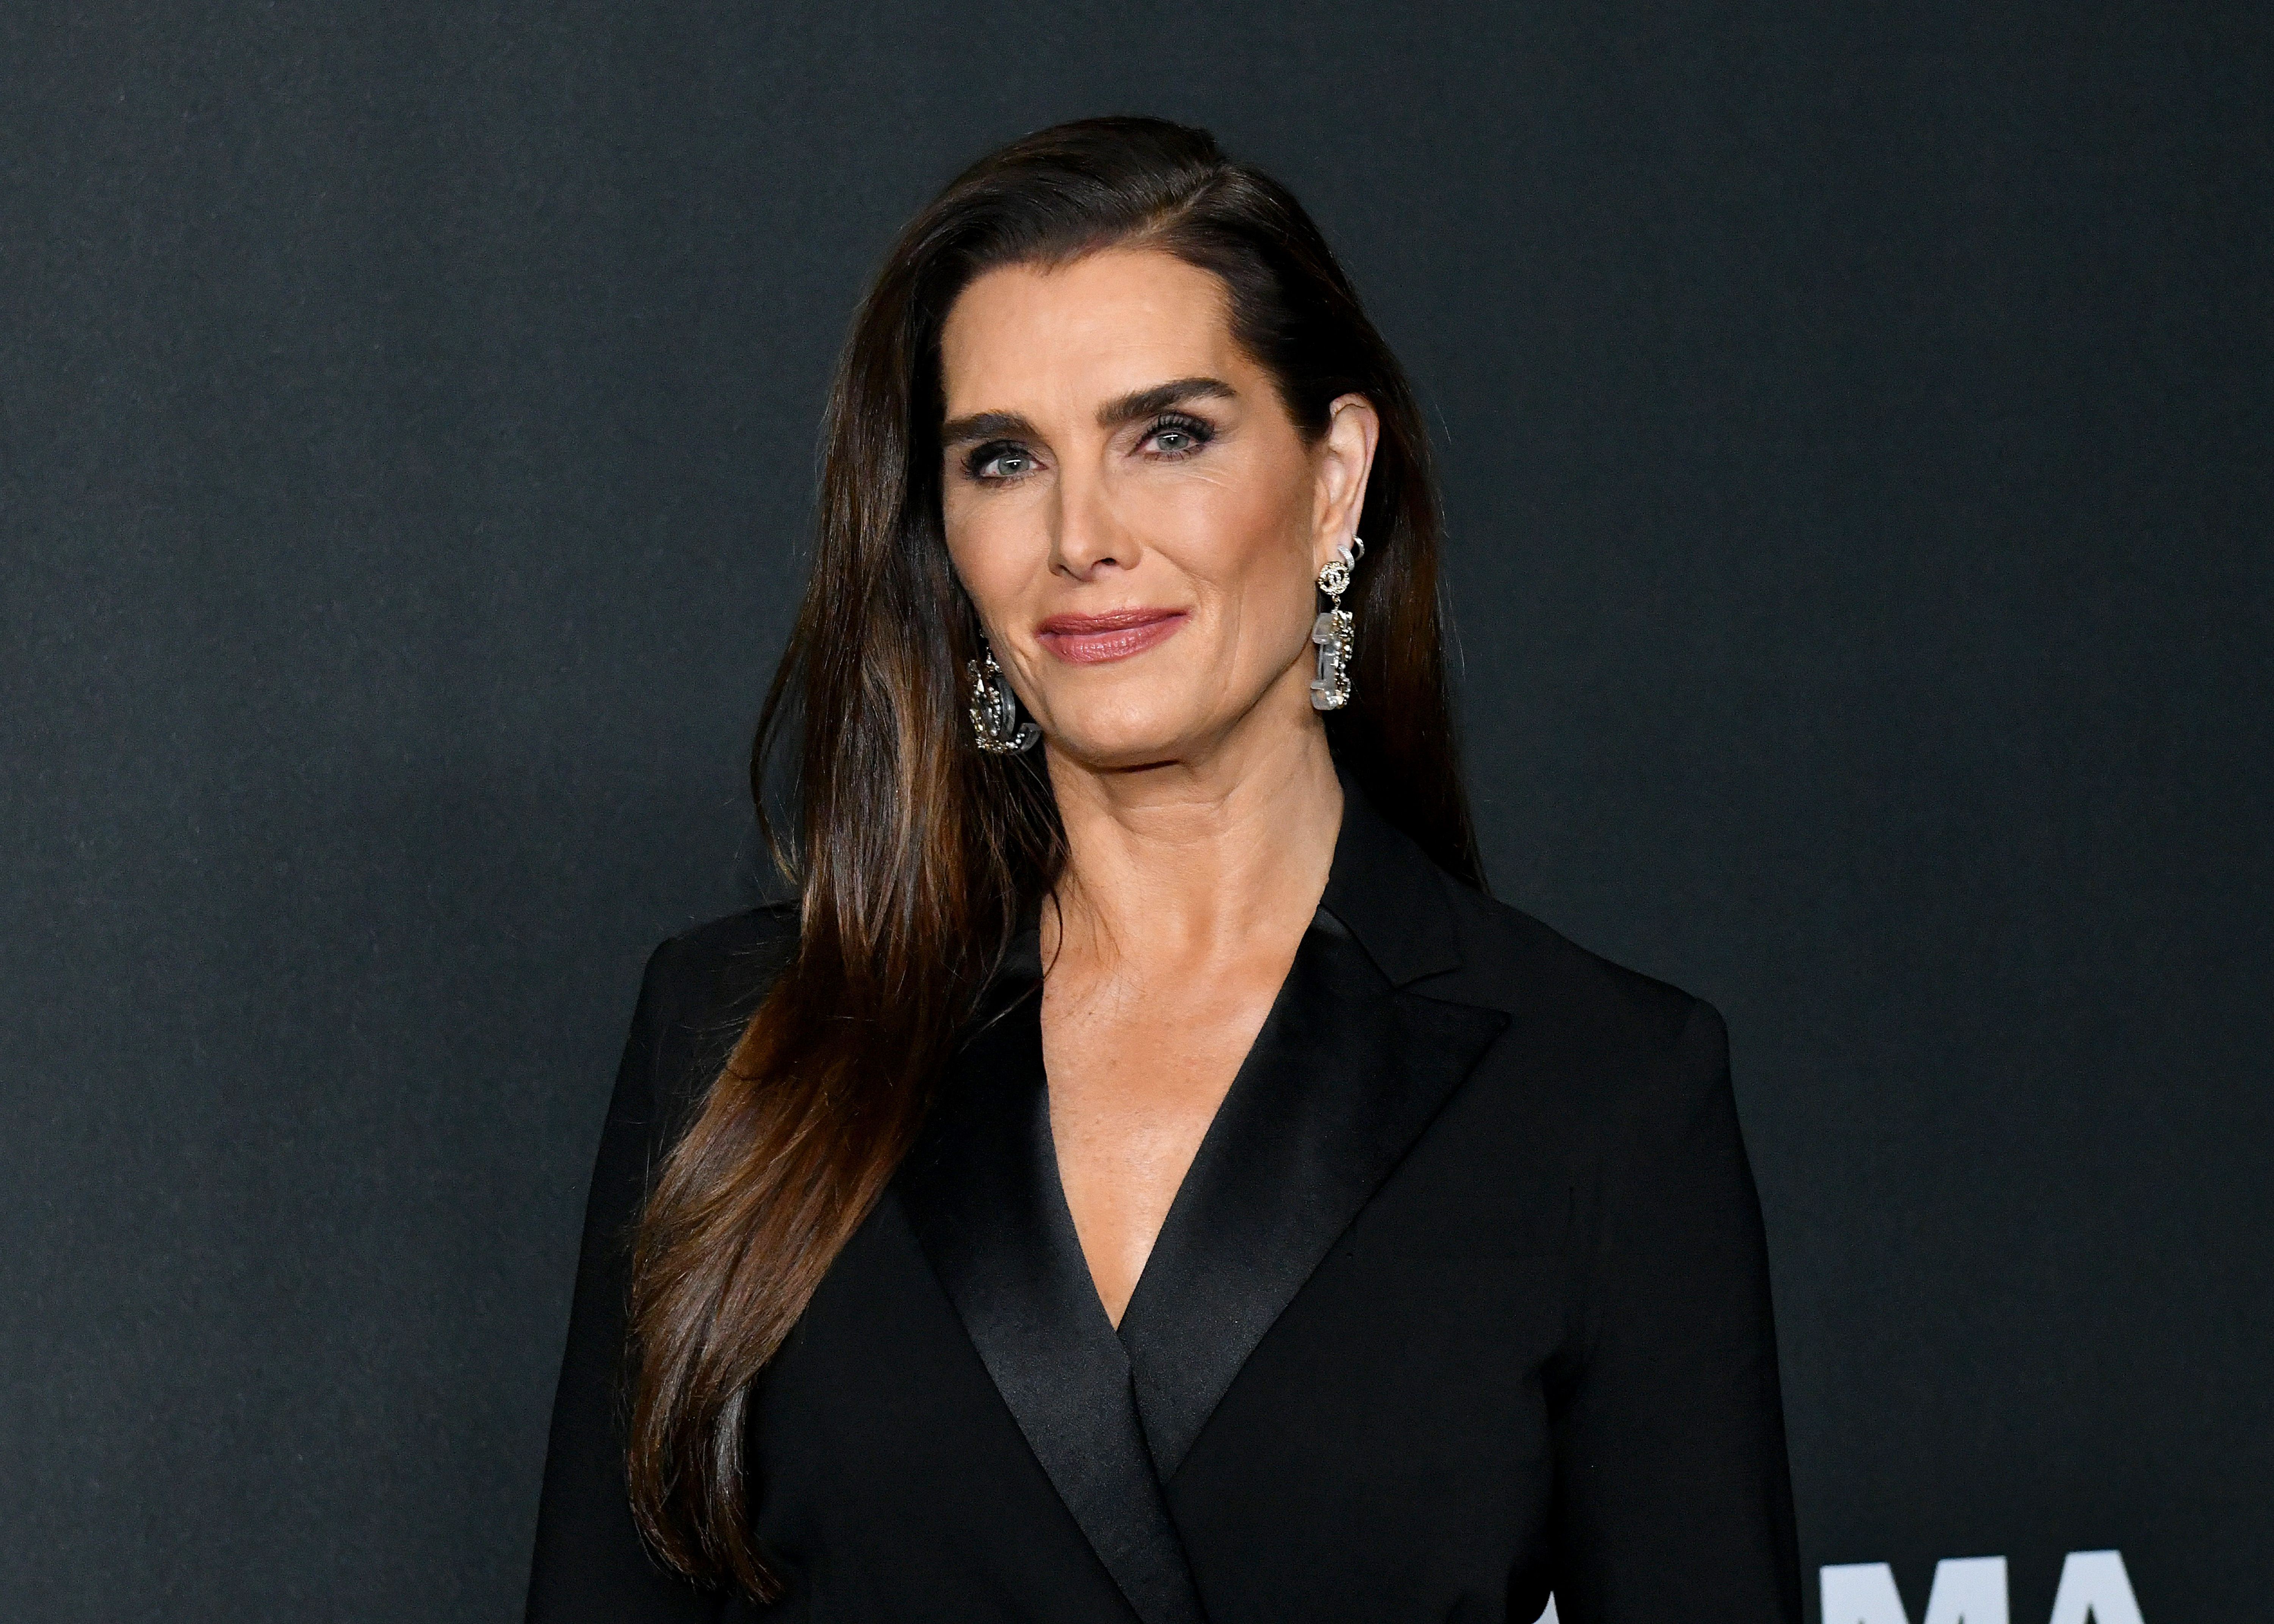 Brooke Shields at MoMA's Twelfth Annual Film Benefit Presented By CHANEL Honoring Laura Dern on November 12, 2019 | Photo: Getty Images